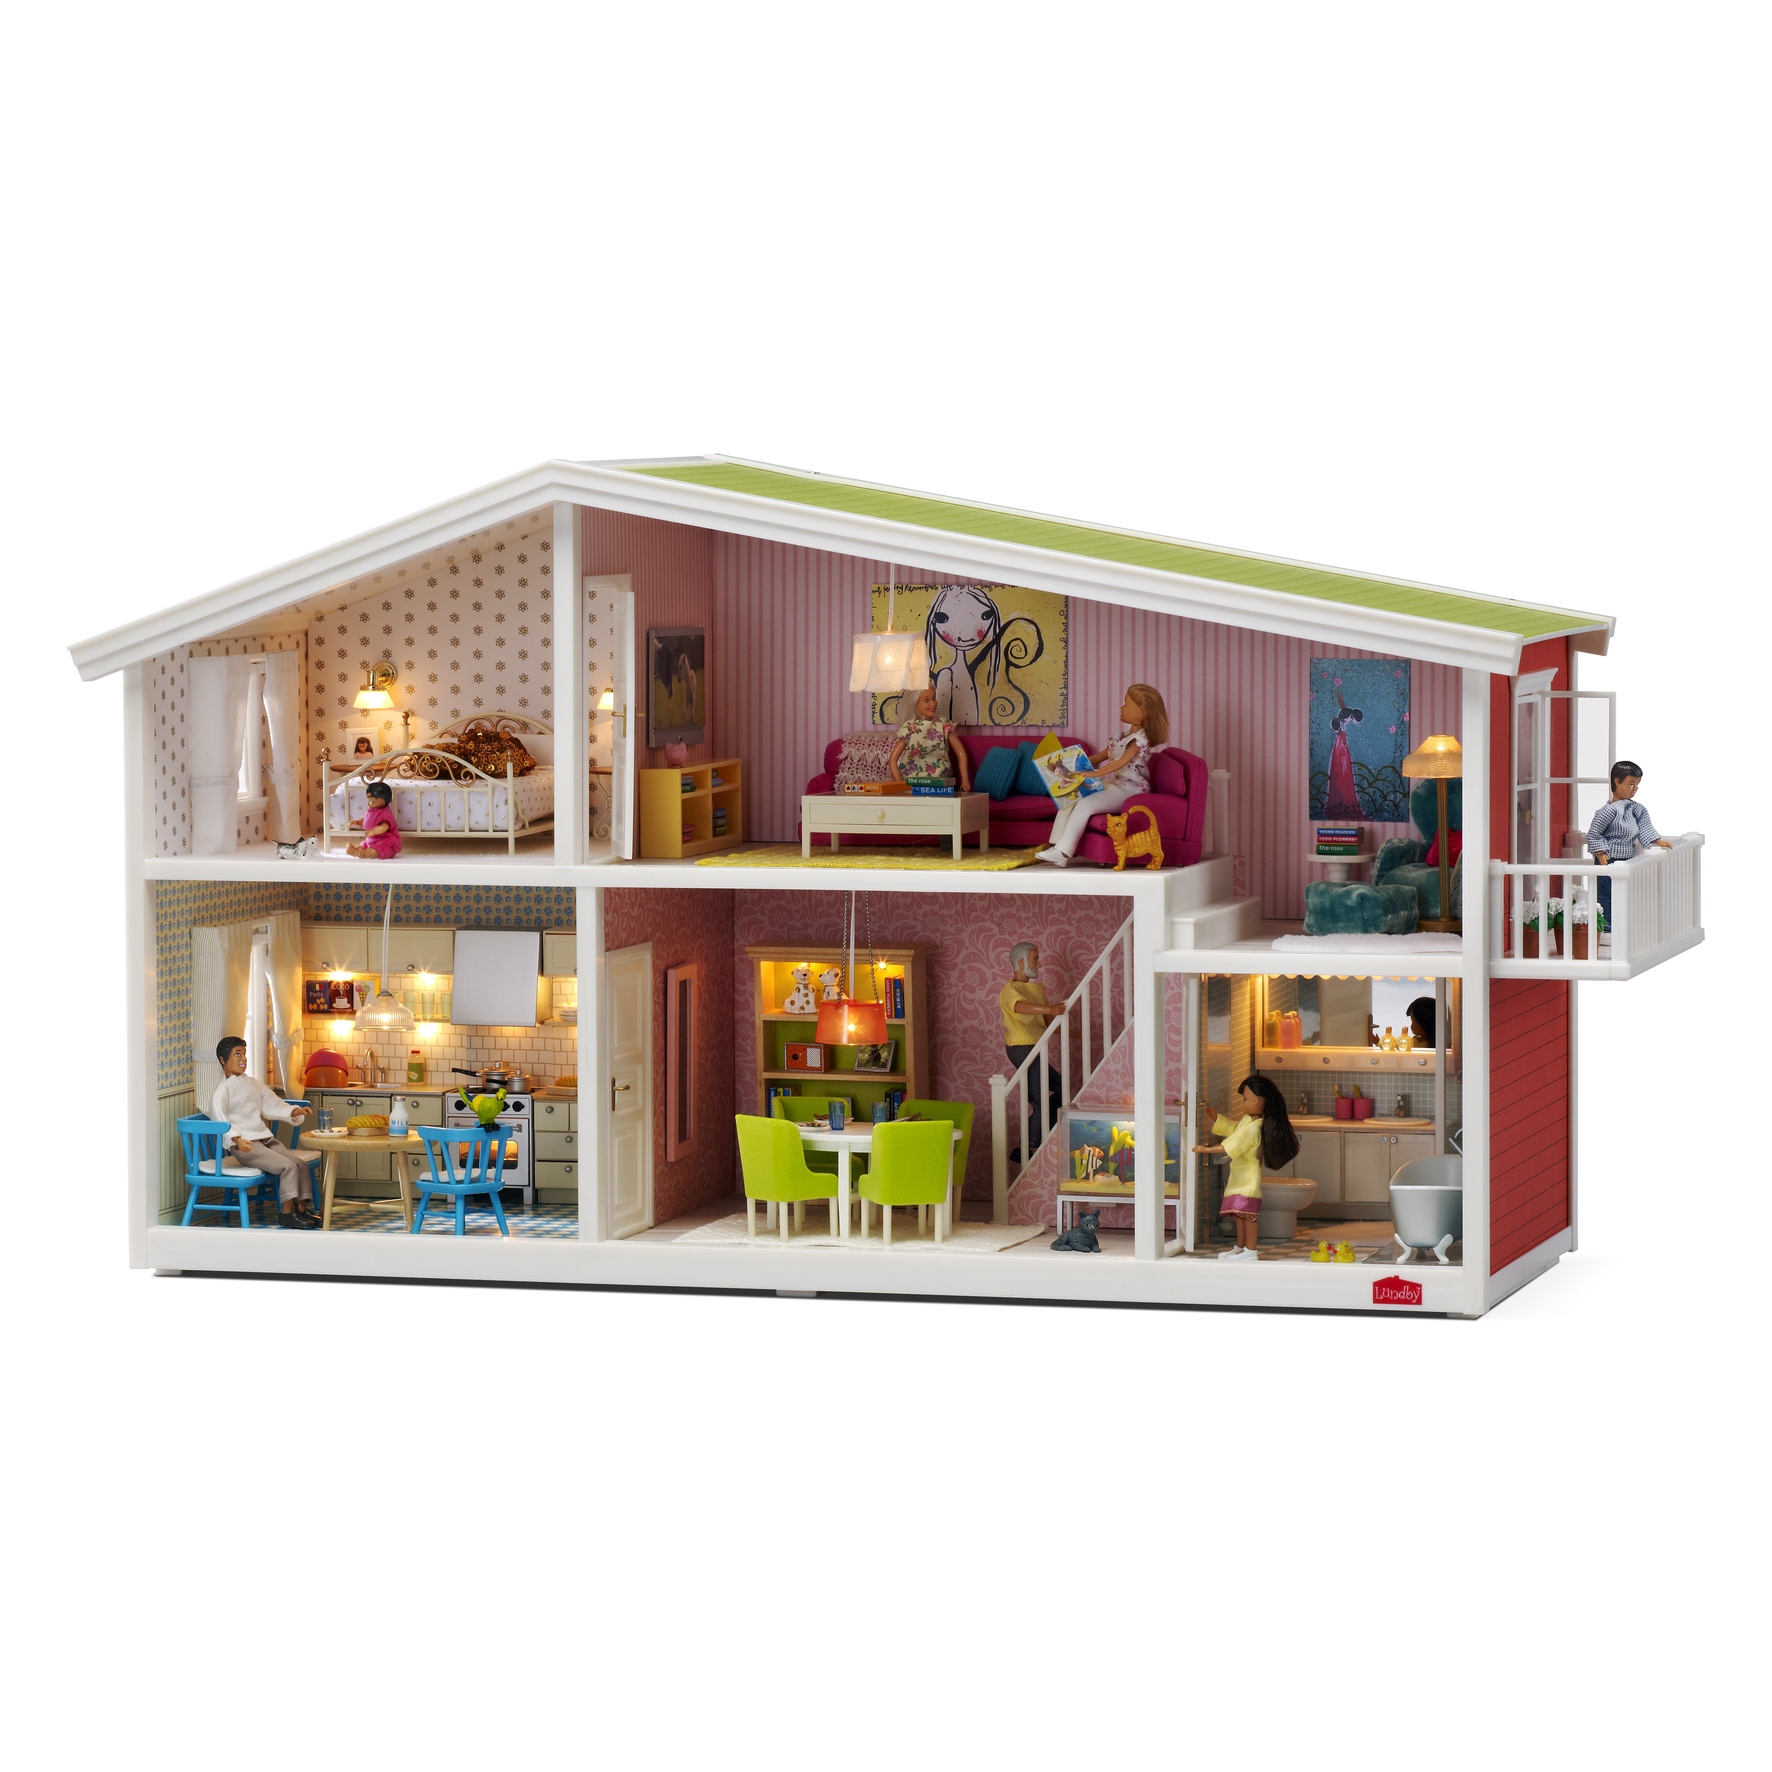 Toys For House : Lundby dolls houses a modern twist on classic play time